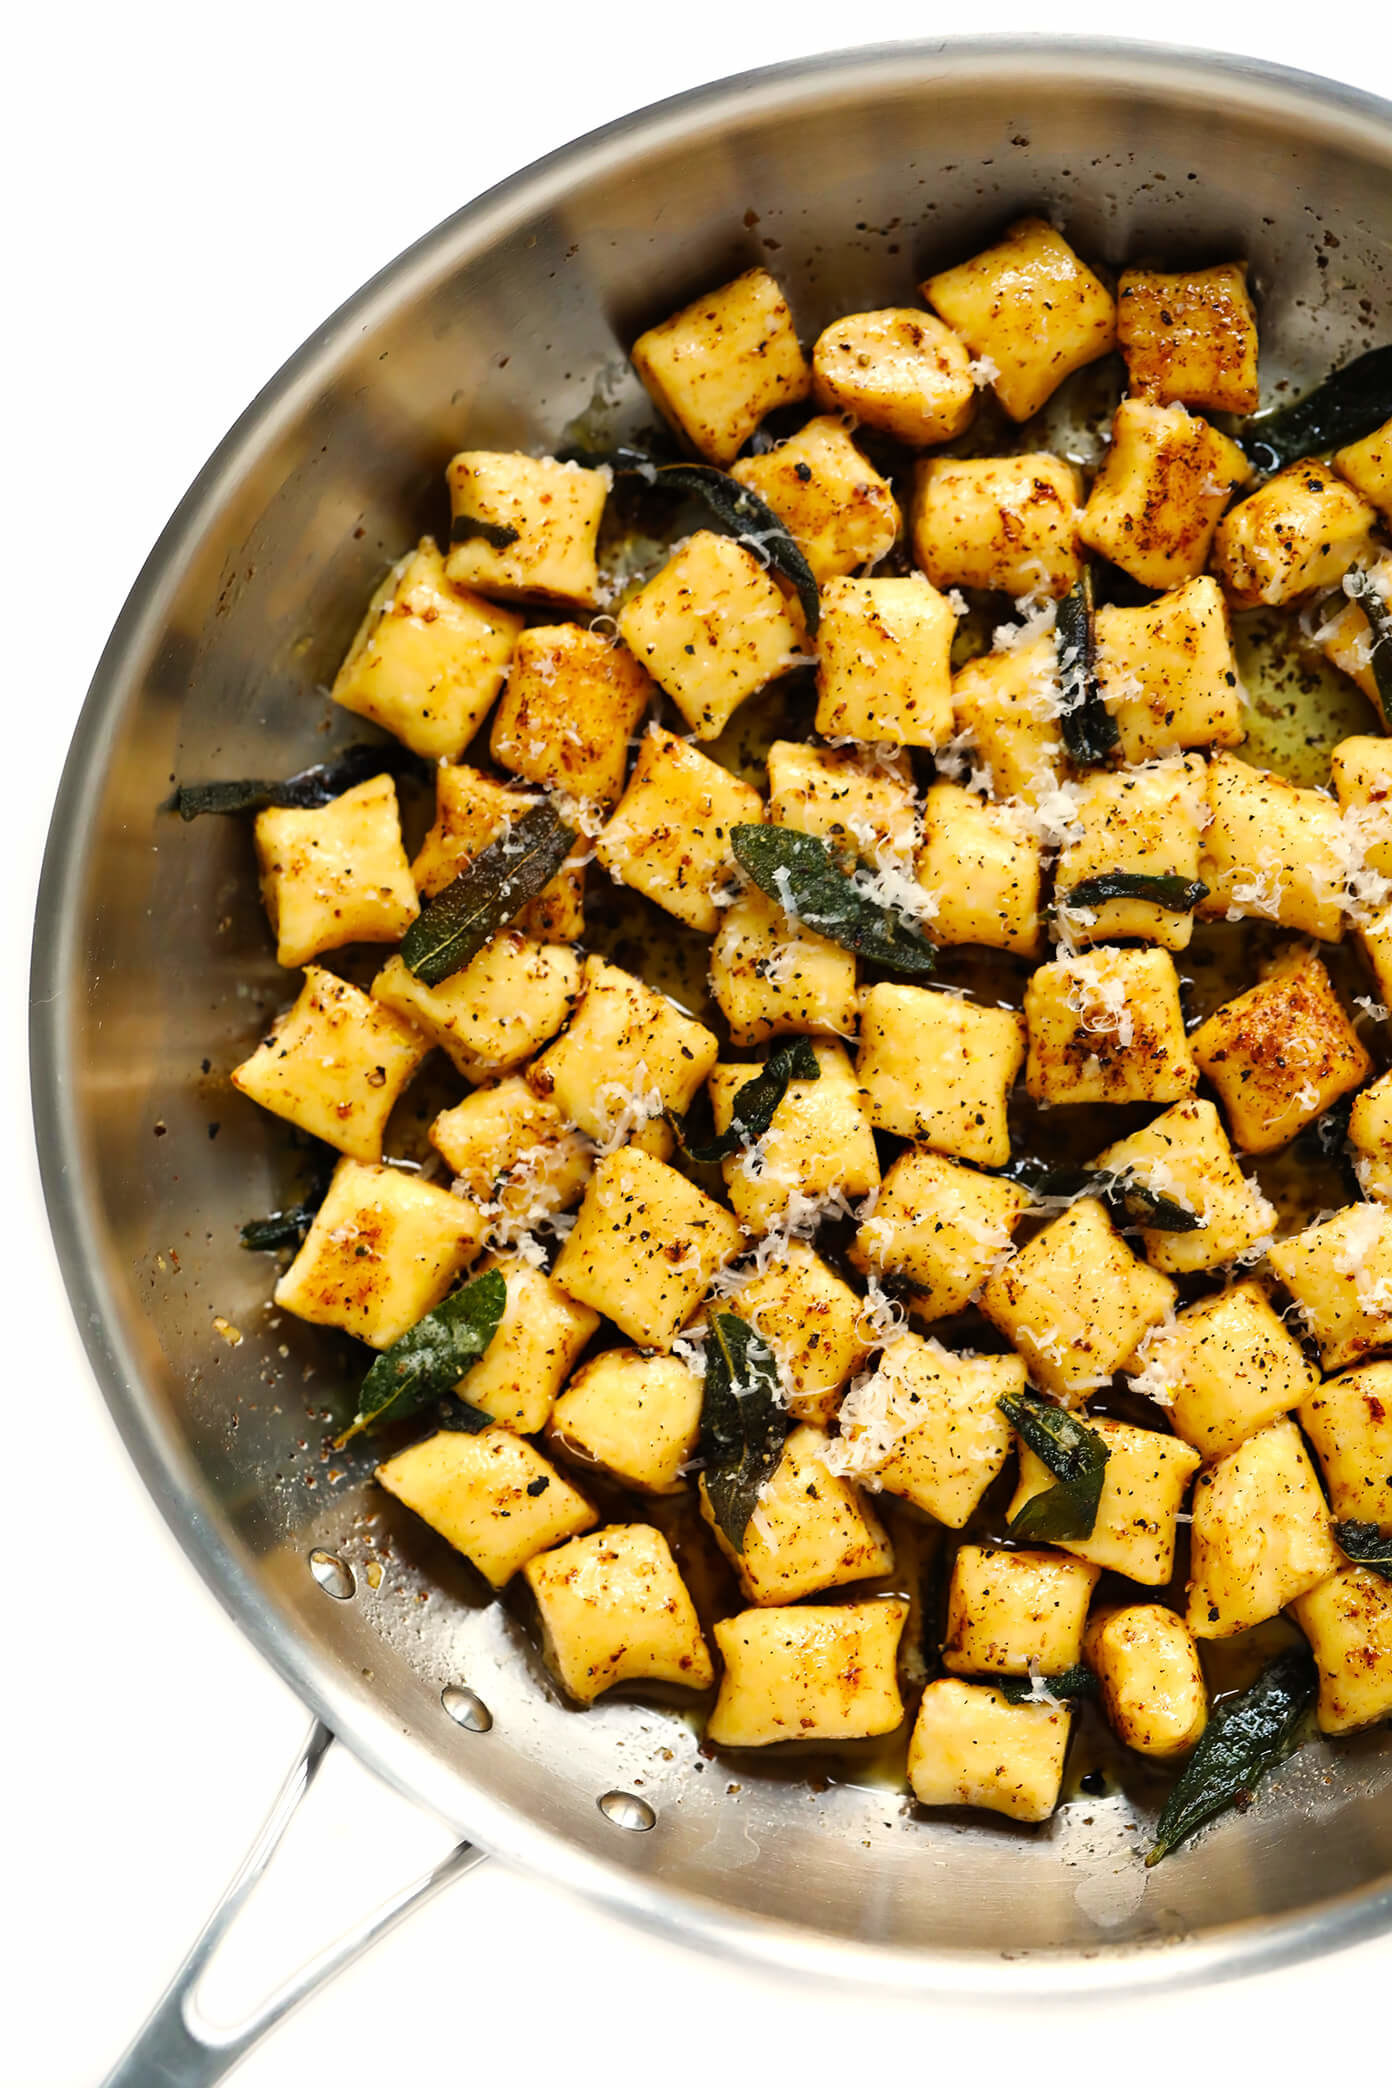 Skillet filled with ricotta gnocchi tossed with fried herbs, grated parmesan cheese, and butter.